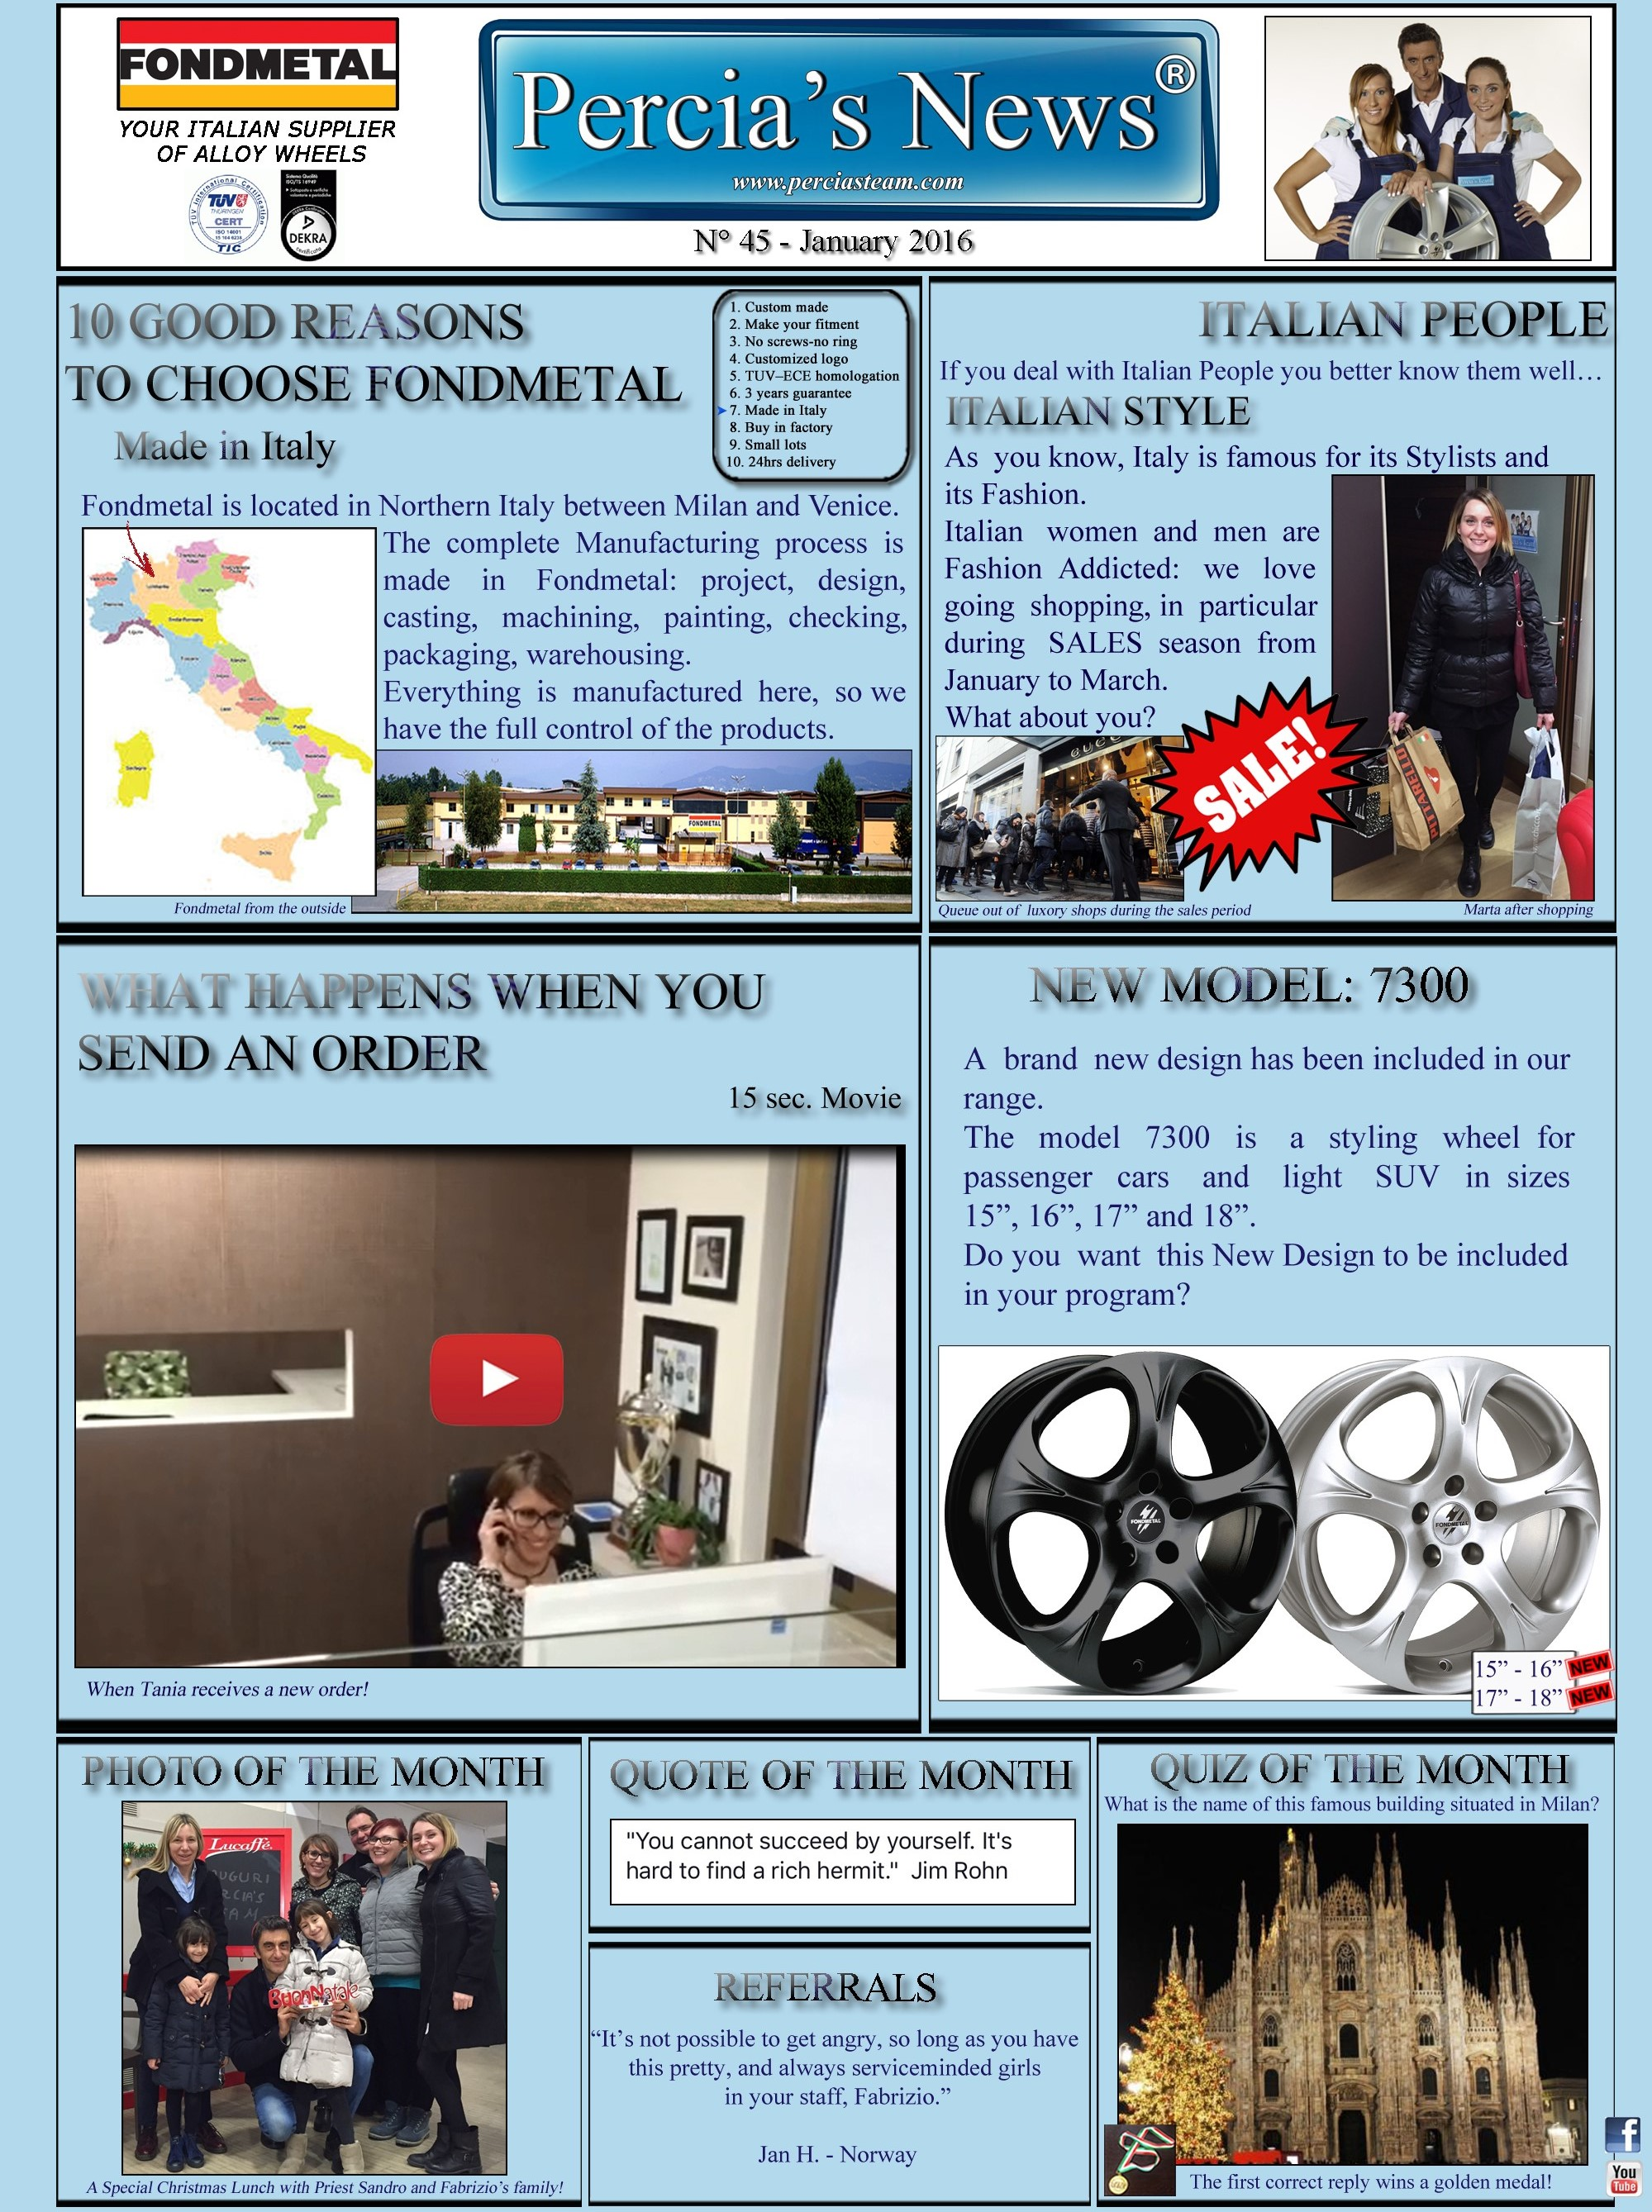 PERCIA'S NEWS - n.45 JANUARY 2016